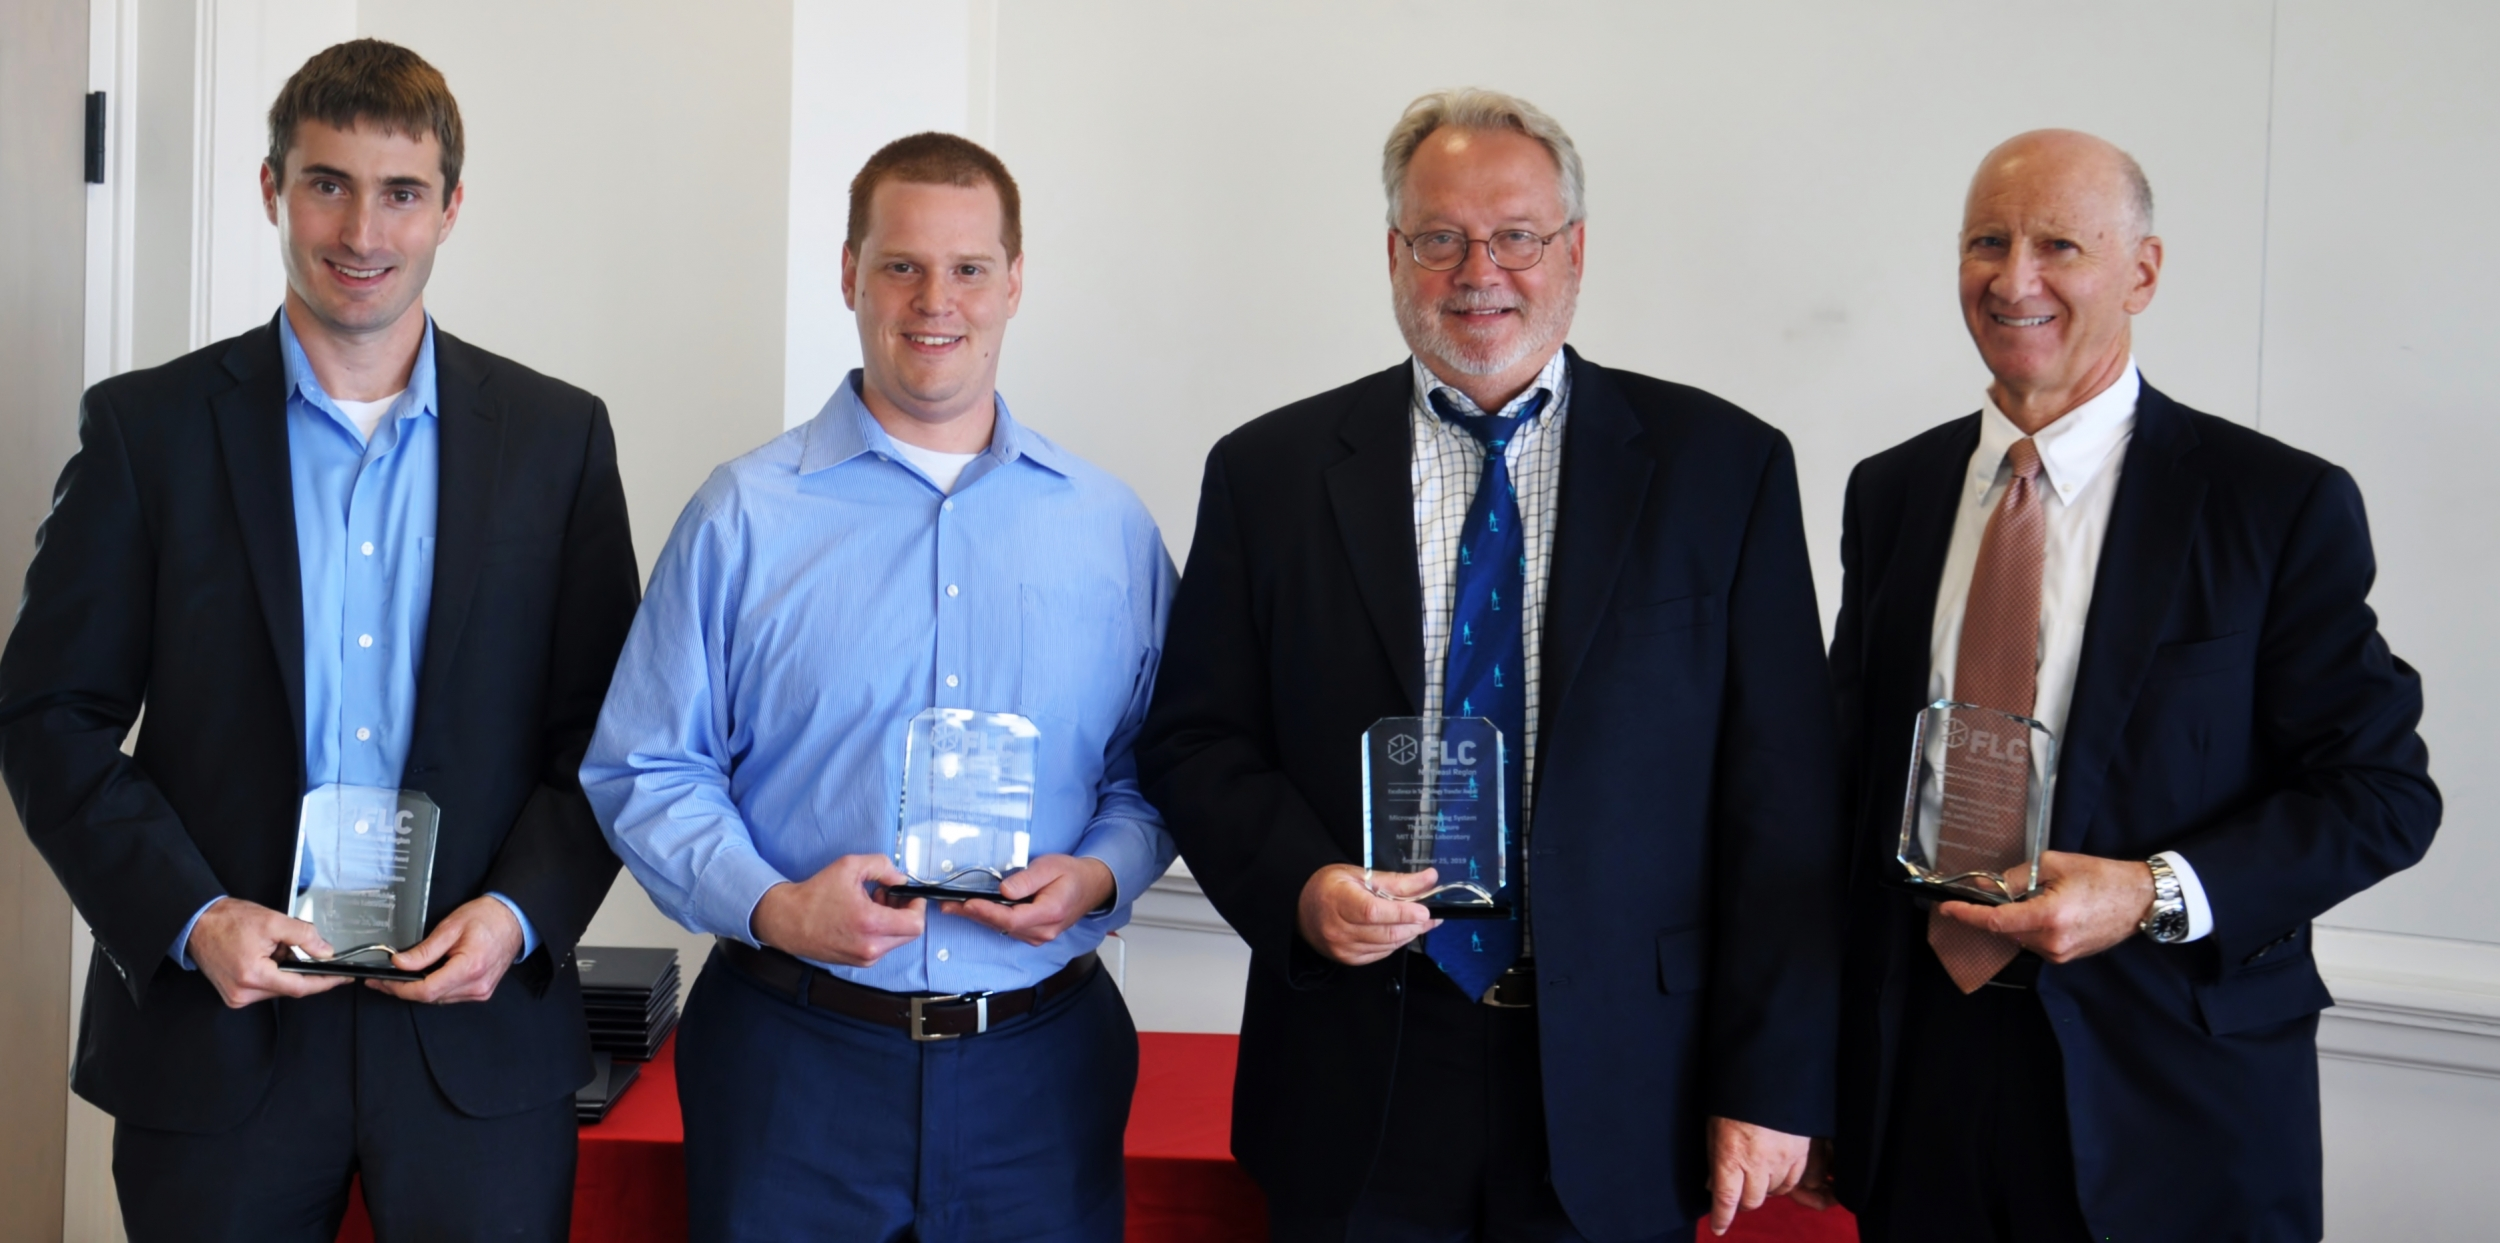 Four lincoln laboratory staff members stand each holding a glass award.